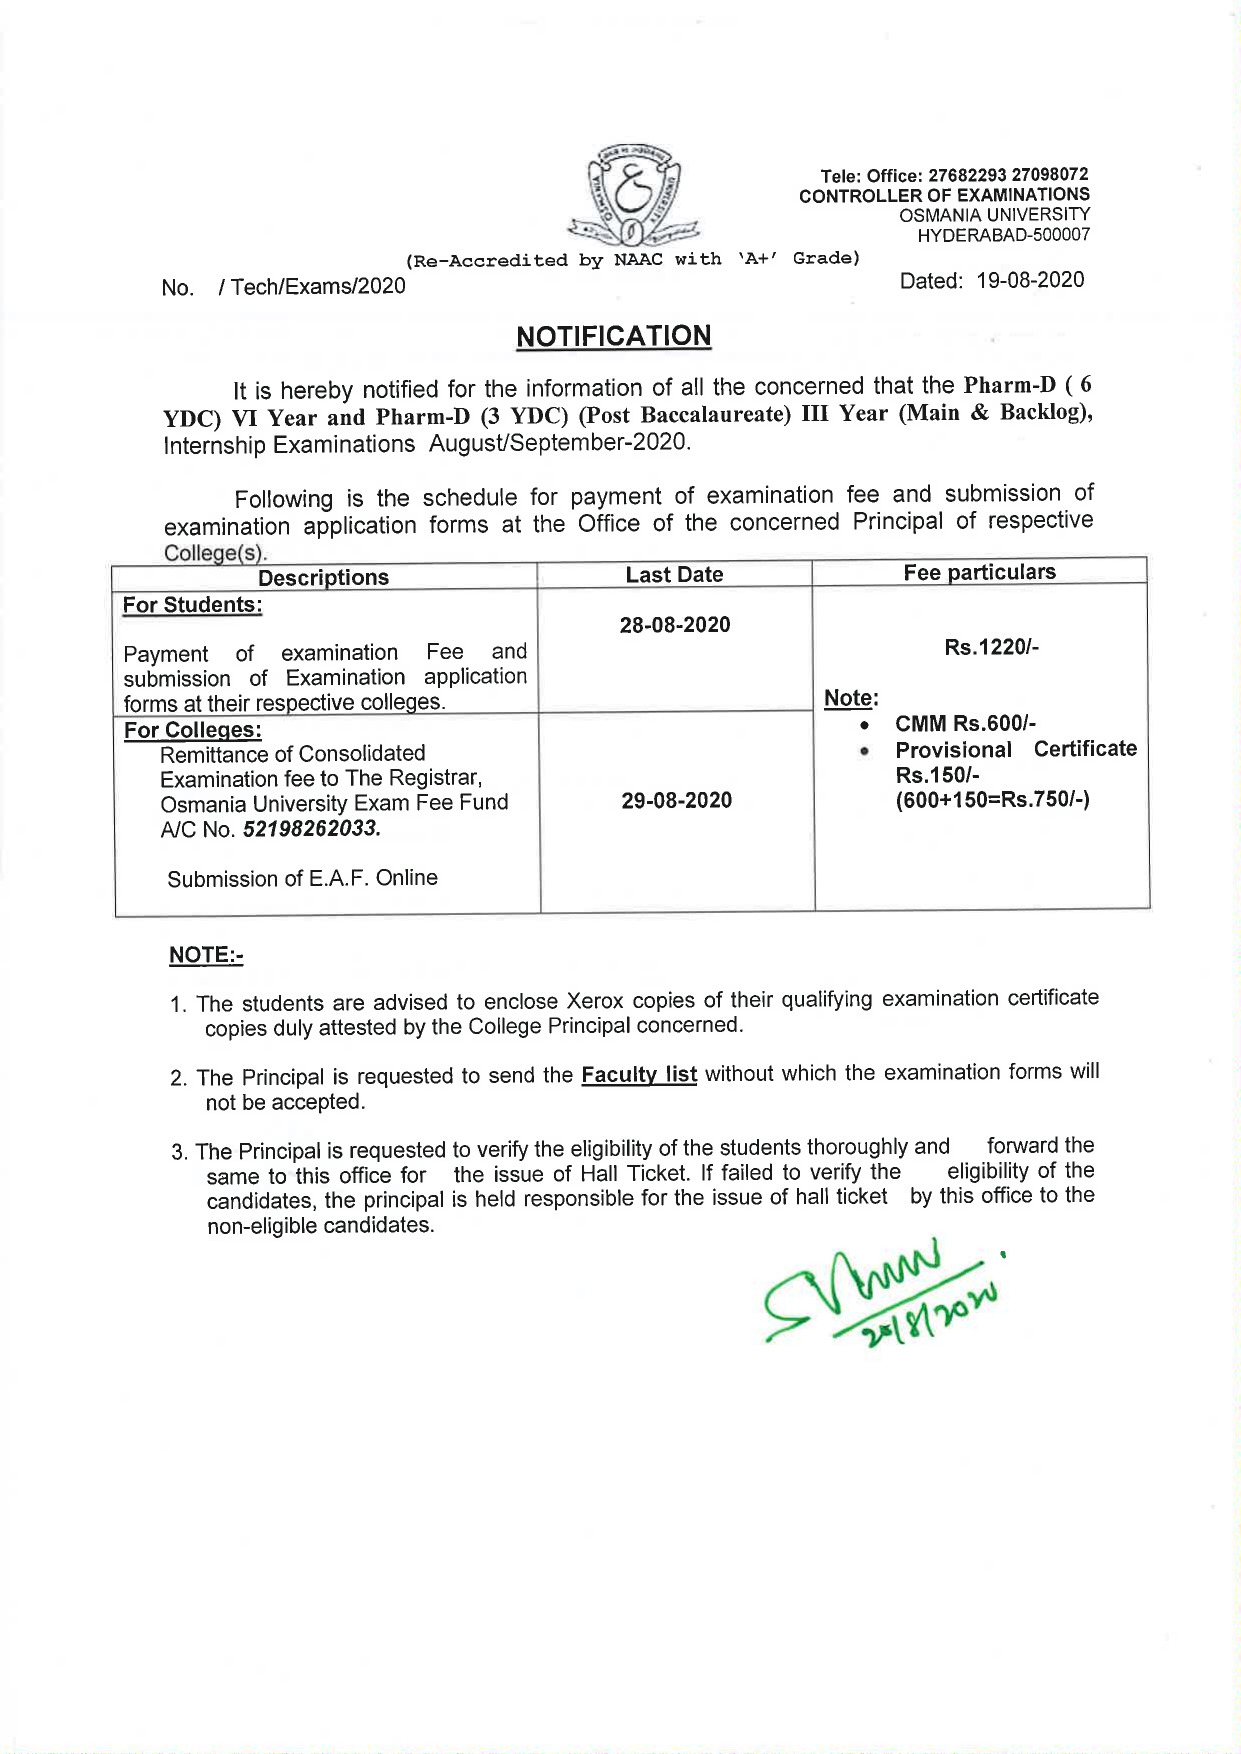 Osmania University Pharma D 3rd & 6th Year August 2020 Exam Fee Notification